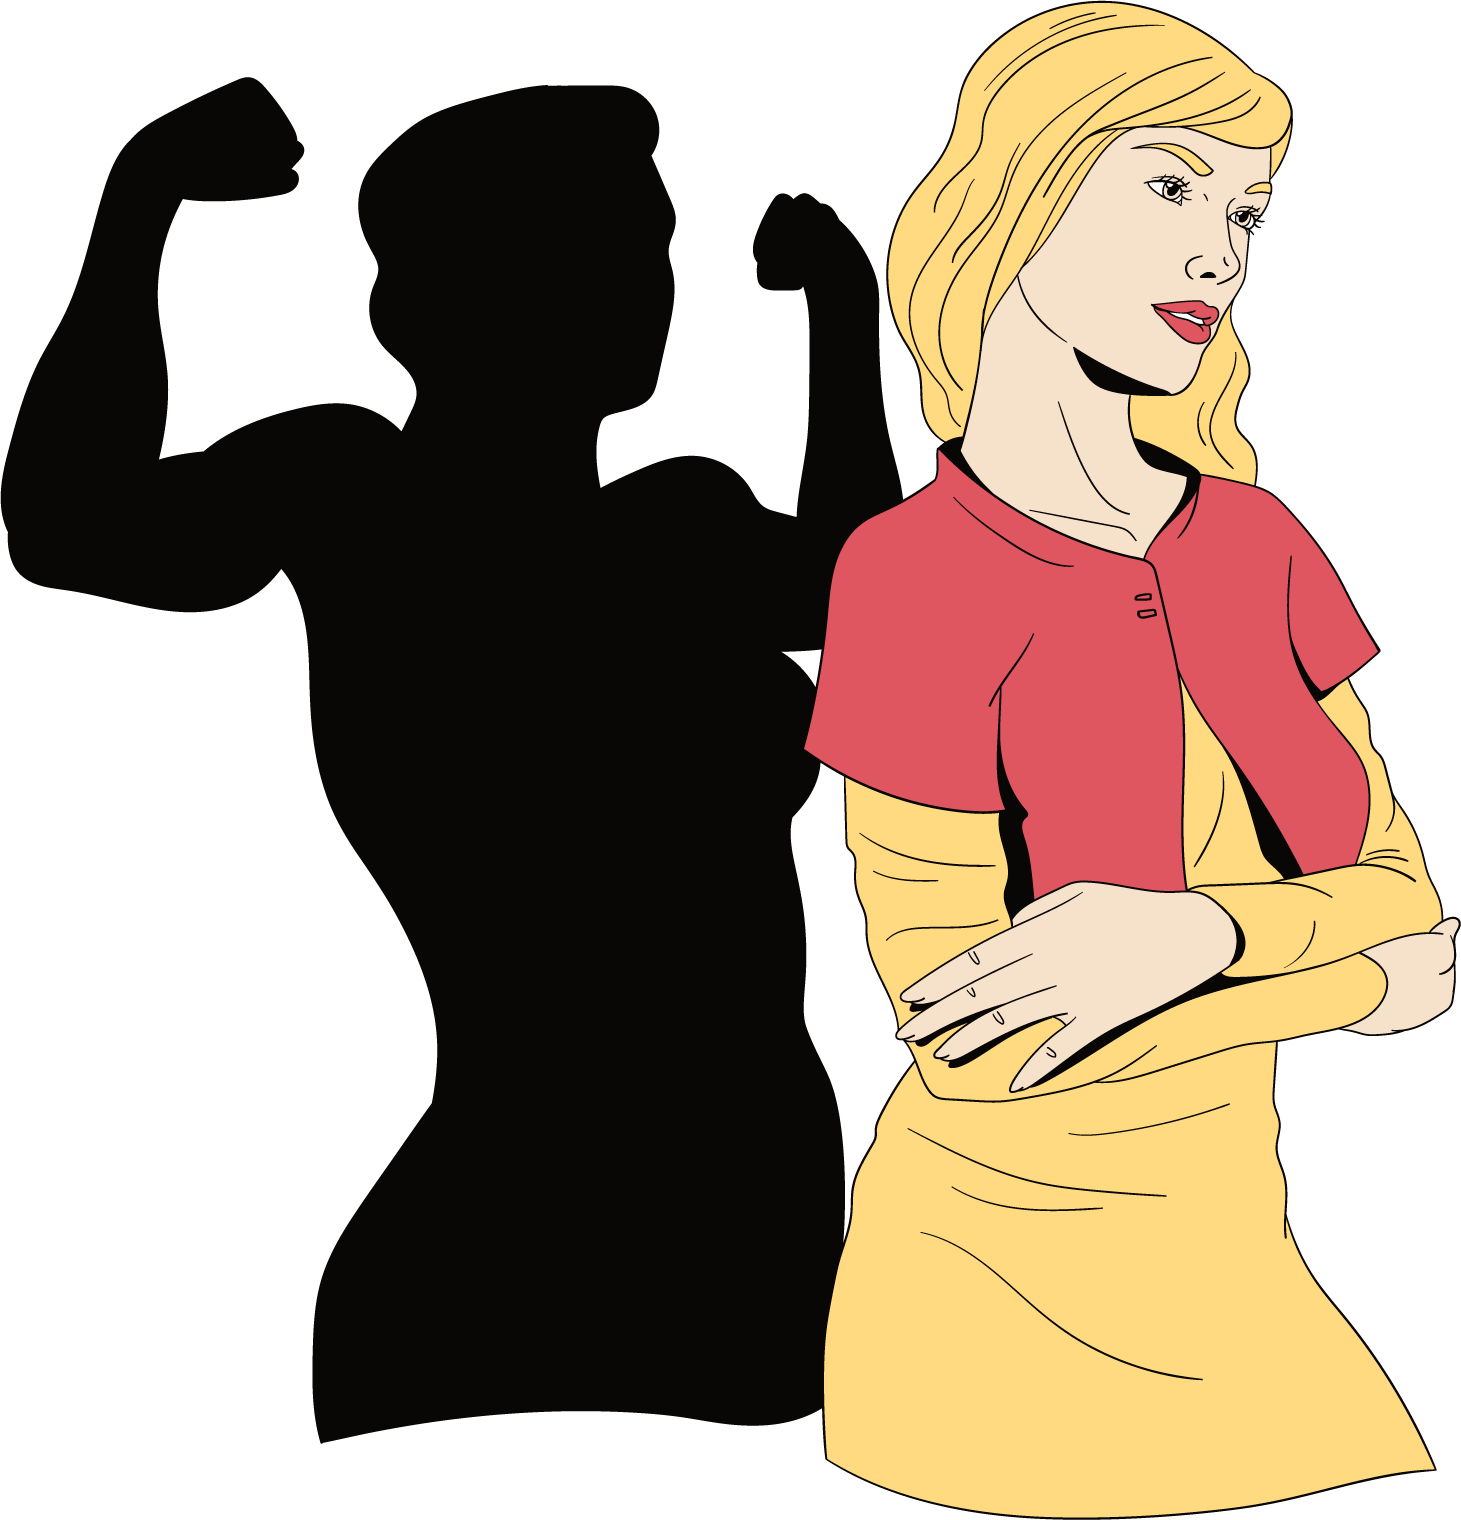 """Une femme forte avec des muscles shadow """"width ="""" 384 """"height ="""" 400 """"srcset ="""" https://mannengeheim.nl/wp-content/uploads/2020/05/Onafpendence-vrouw.png 1461w, https: // mensgeheim .nl / wp-content / uploads / 2020/05 / Femme-indépendante-288x300.png 288w, https://mannengeheim.nl/wp-content/uploads/2020/05/Independent-vrouw-984x1024.png 984w, https : //mannengeheim.nl/wp-content/uploads/2020/05/Onafpendence-vrouw-144x150.png 144w, https://mannengeheim.nl/wp-content/uploads/2020/05/Independent-vrouw-62x65. png 62w, https://mannengeheim.nl/wp-content/uploads/2020/05/Onafpendence-vrouw-211x220.png 211w, https://mannengeheim.nl/wp-content/uploads/2020/05/Onafpendence- femme-96x100.png 96w, https://mannengeheim.nl/wp-content/uploads/2020/05/Onafpendence-vrouw-384x400.png 384w, https://mannengeheim.nl/wp-content/uploads/2020/ 05 / Femme-indépendante-433x450.png 433w, https://mannengeheim.nl/wp-content/uploads/2020/05/Independent-vrouw-490x510.png 490w """"tailles ="""" (largeur max: 384px) 100vw, 384 px"""